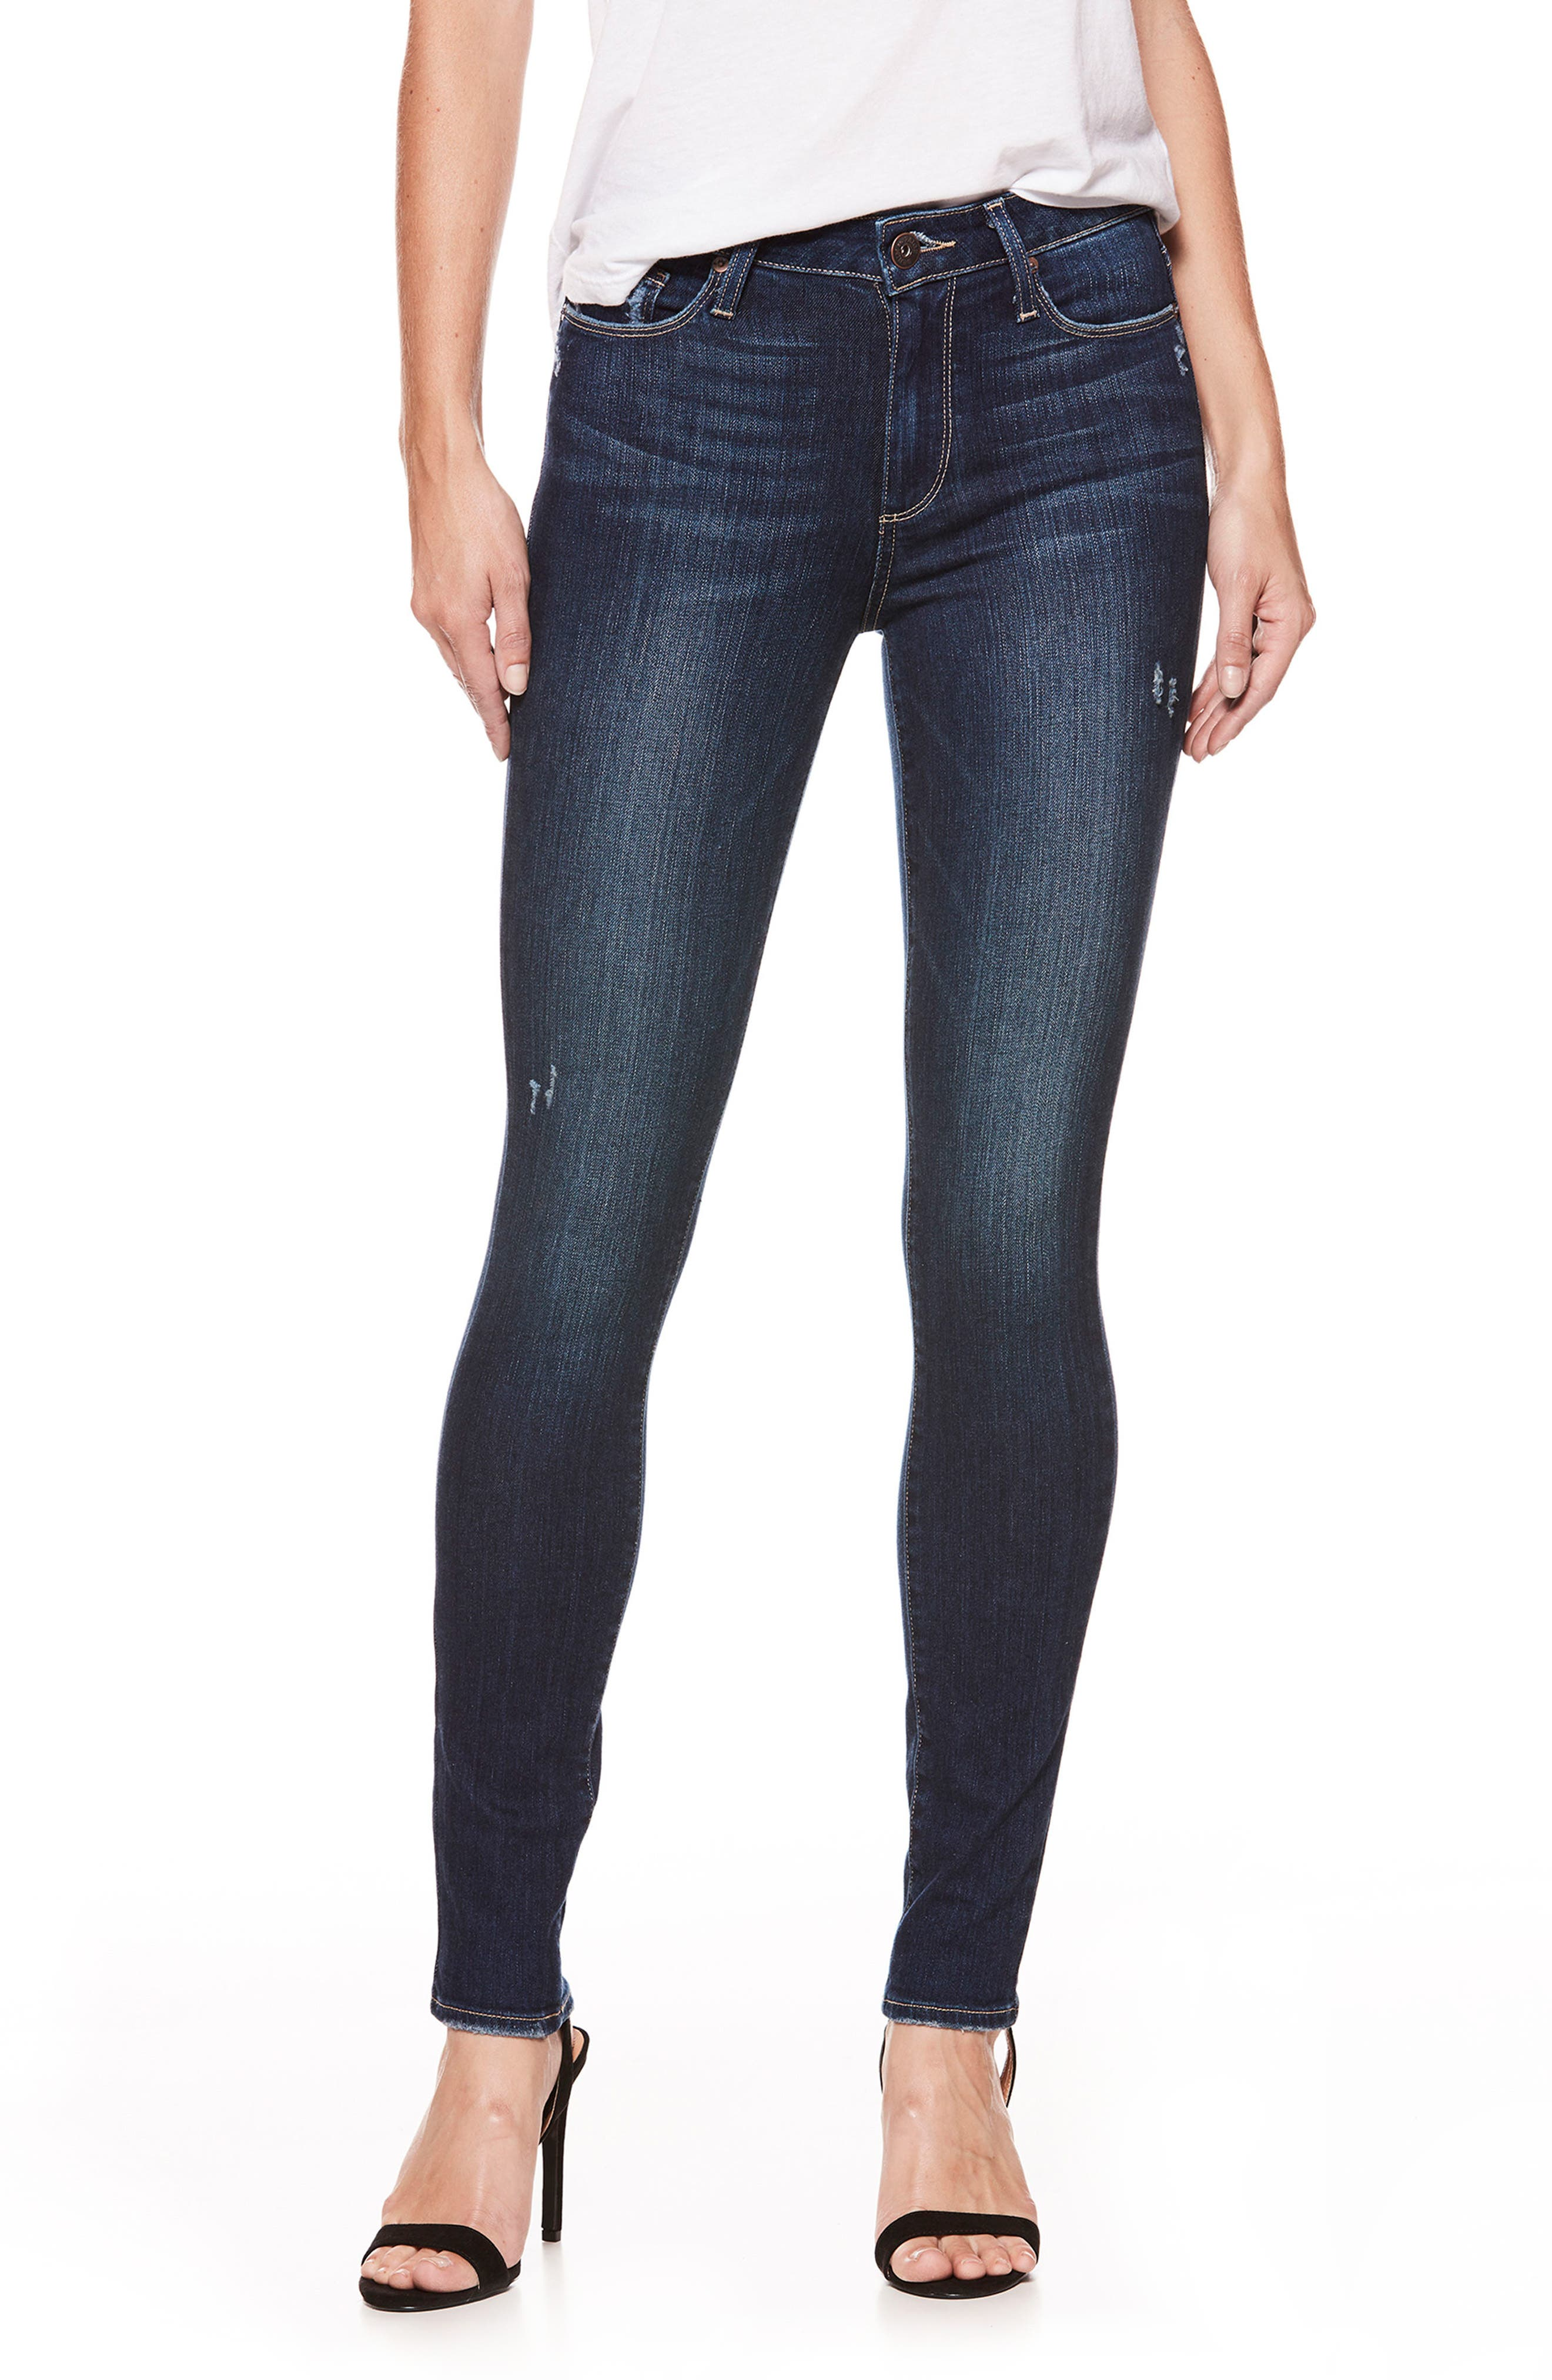 Alternate Image 1 Selected - PAIGE Hoxton High Waist Skinny Jeans (Marina)